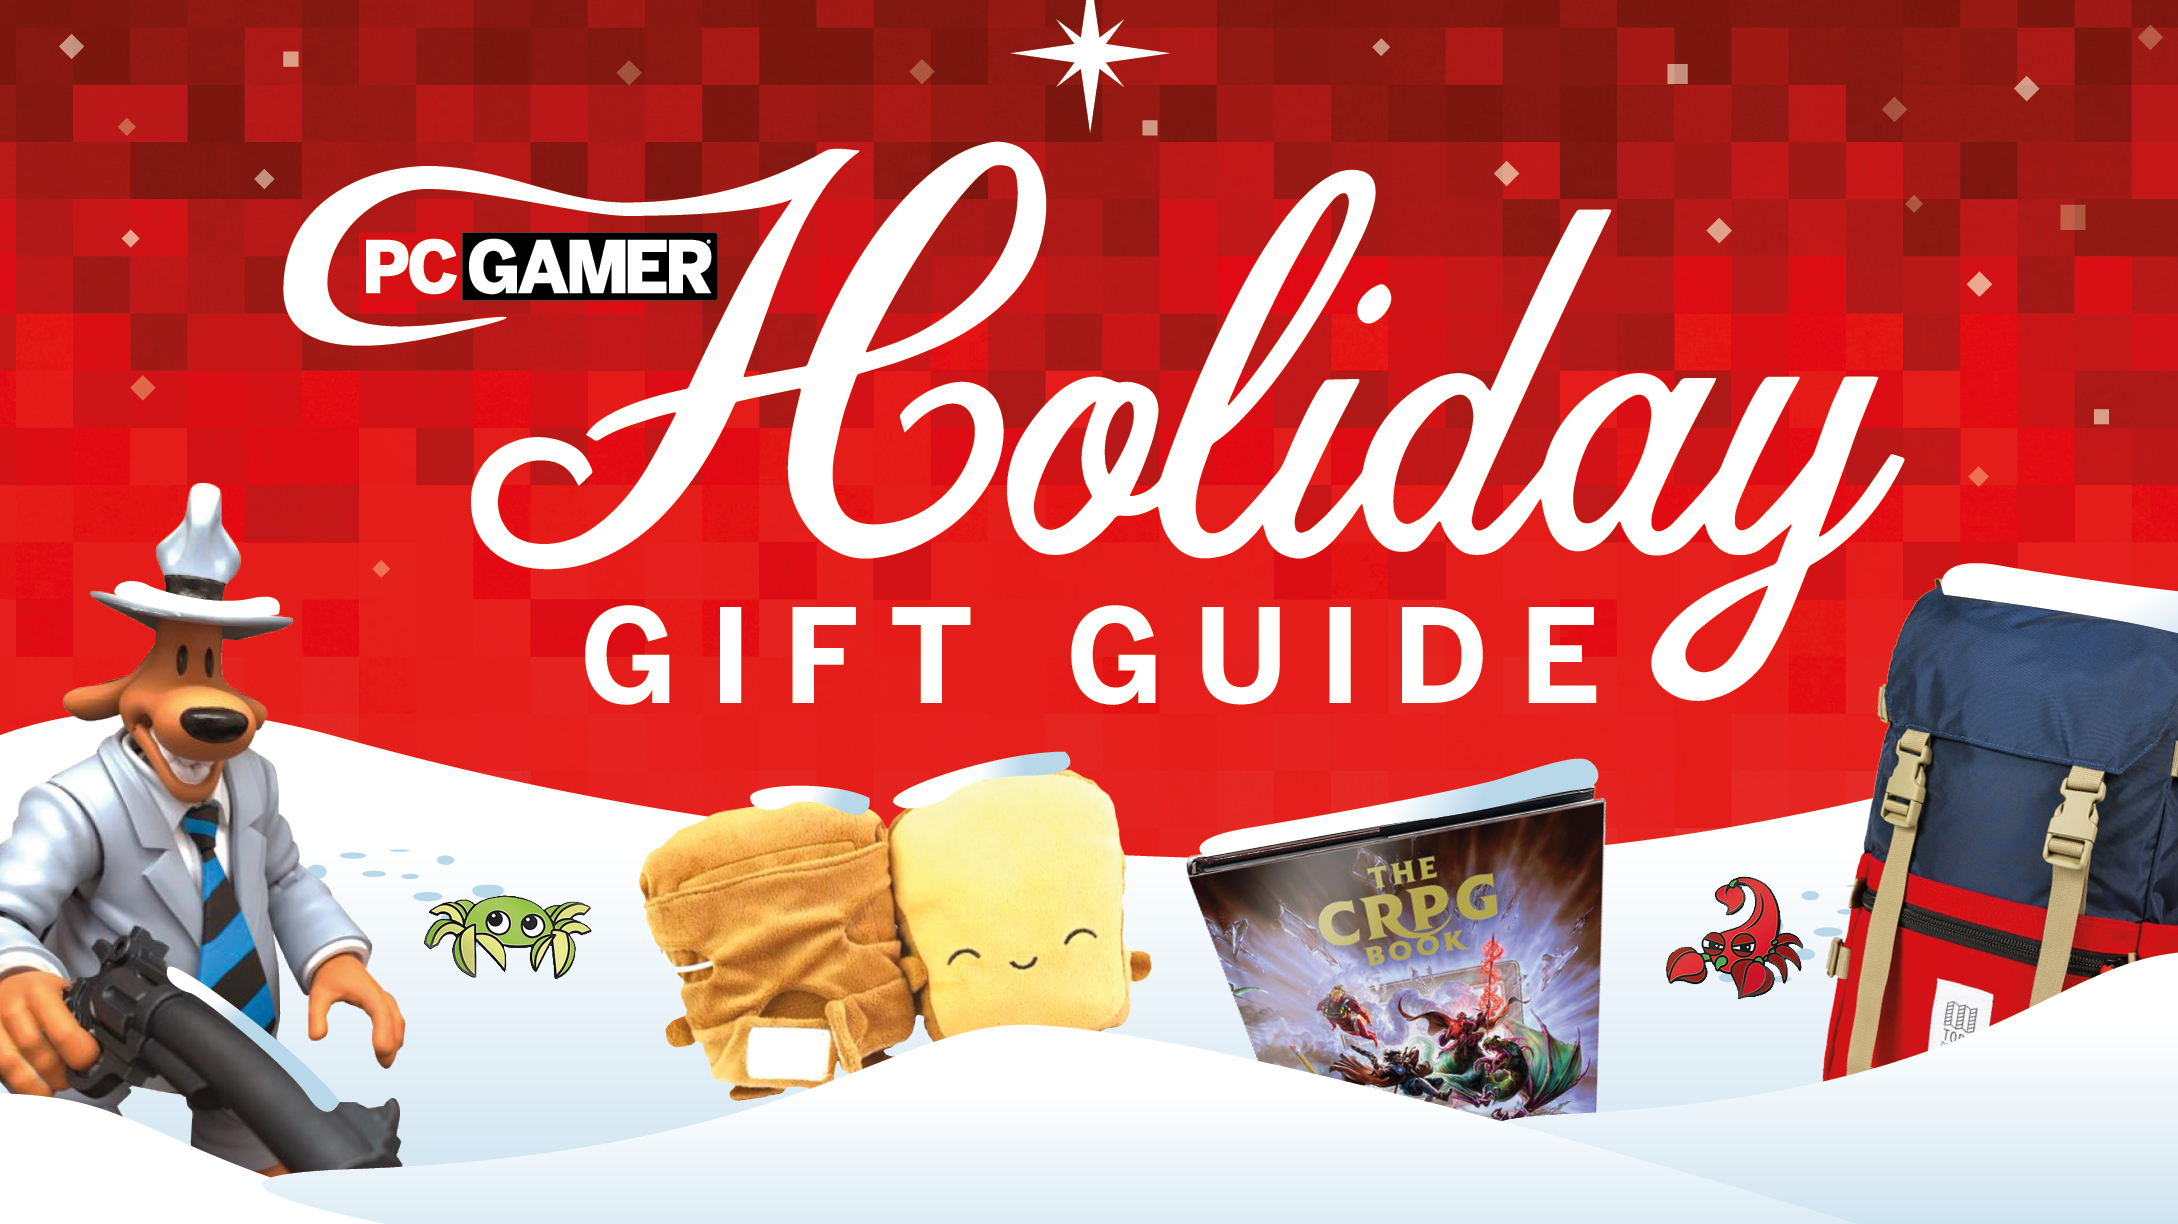 PC Gamer's 2020 Holiday Gift Guide